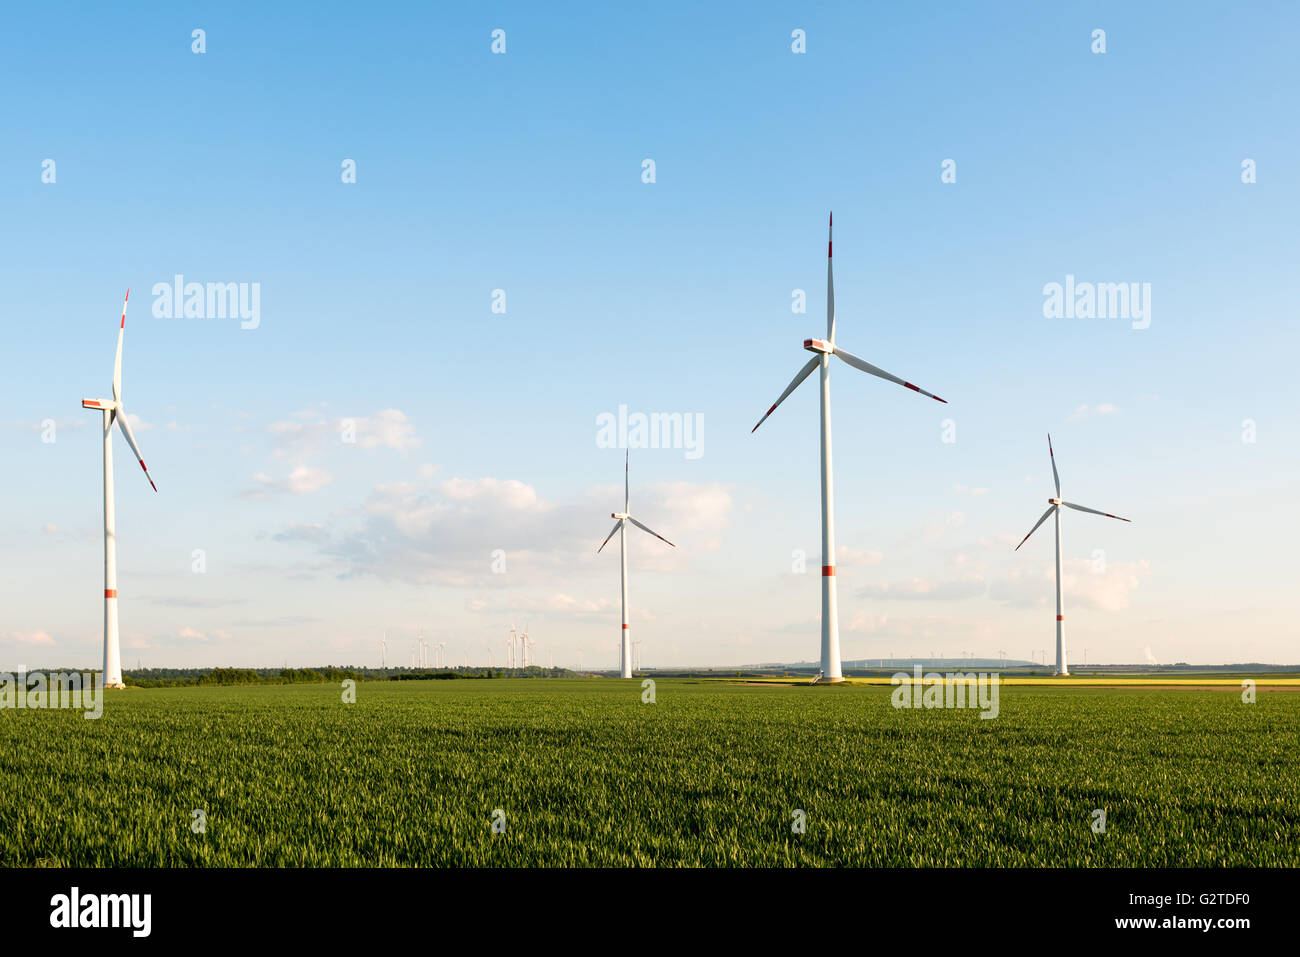 Wind turbines in front of a coal-fired plant - Stock Image